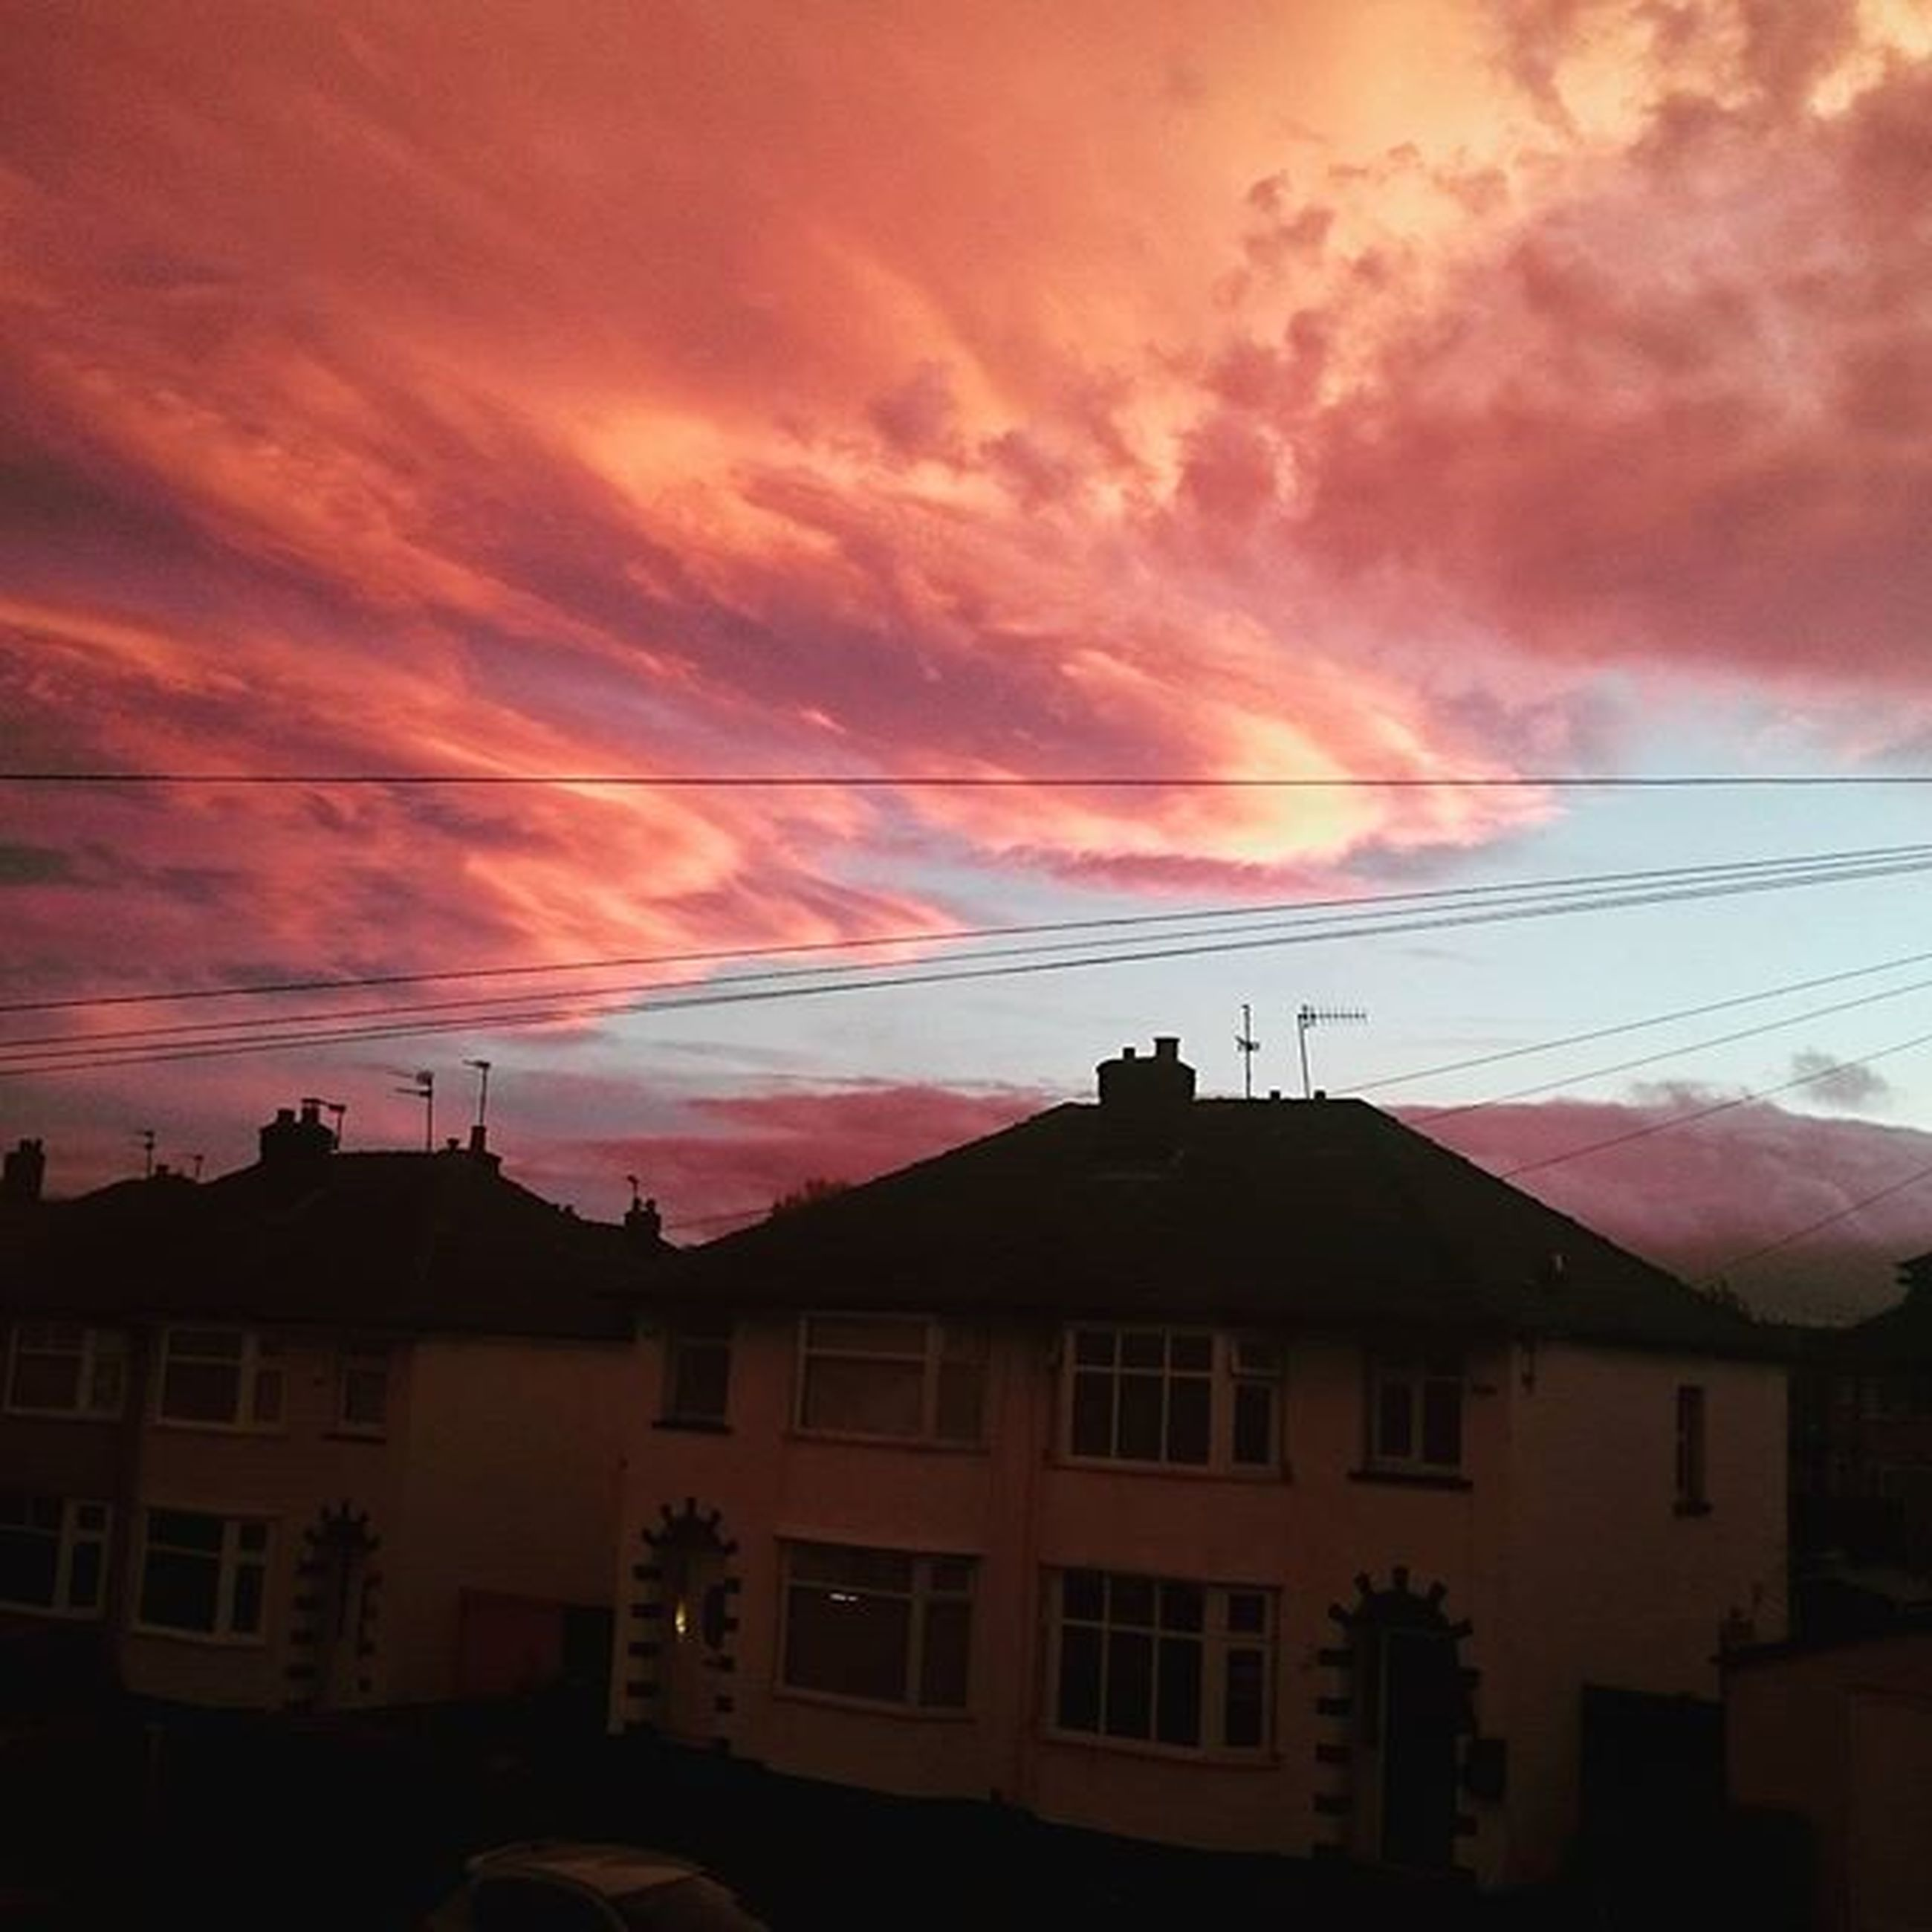 sunset, building exterior, architecture, sky, built structure, cloud - sky, orange color, house, cloudy, residential structure, cloud, power line, residential building, low angle view, silhouette, weather, dramatic sky, building, beauty in nature, nature